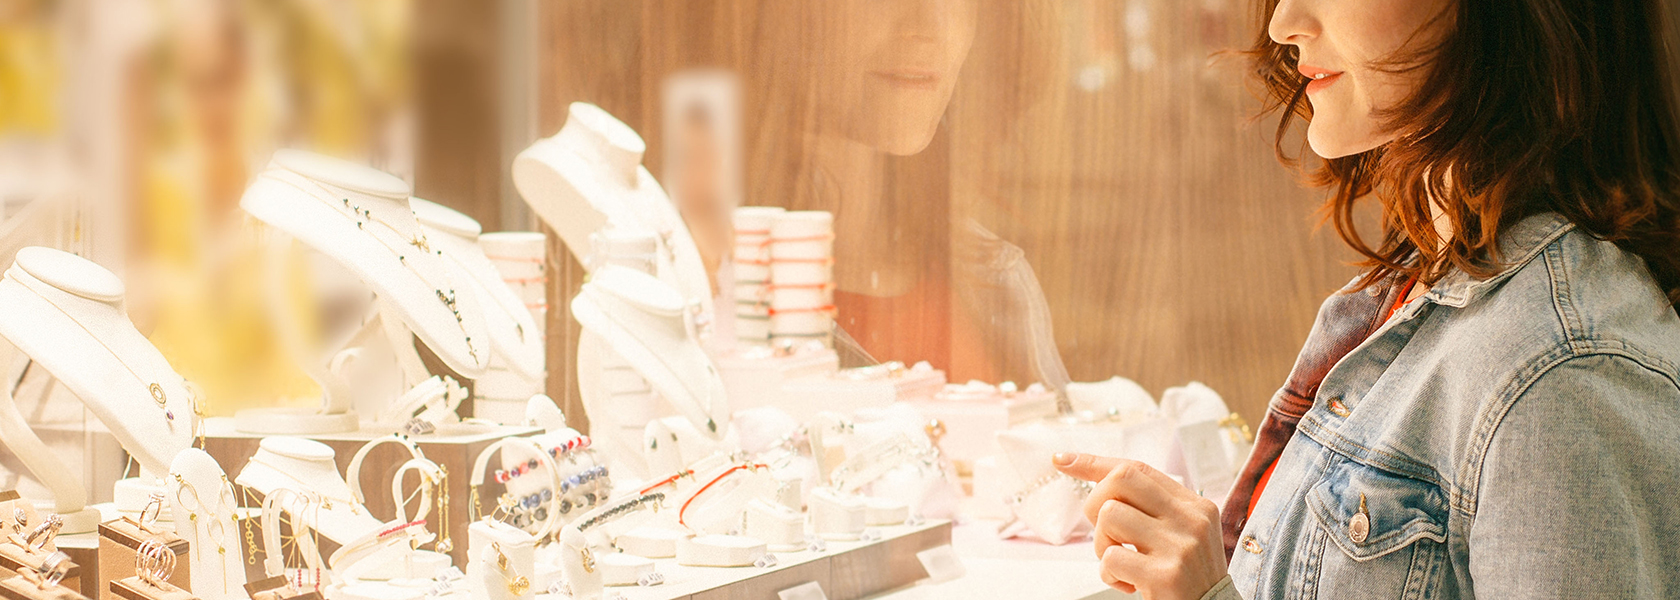 Jewellery Shop Cleaning Services in Dubai